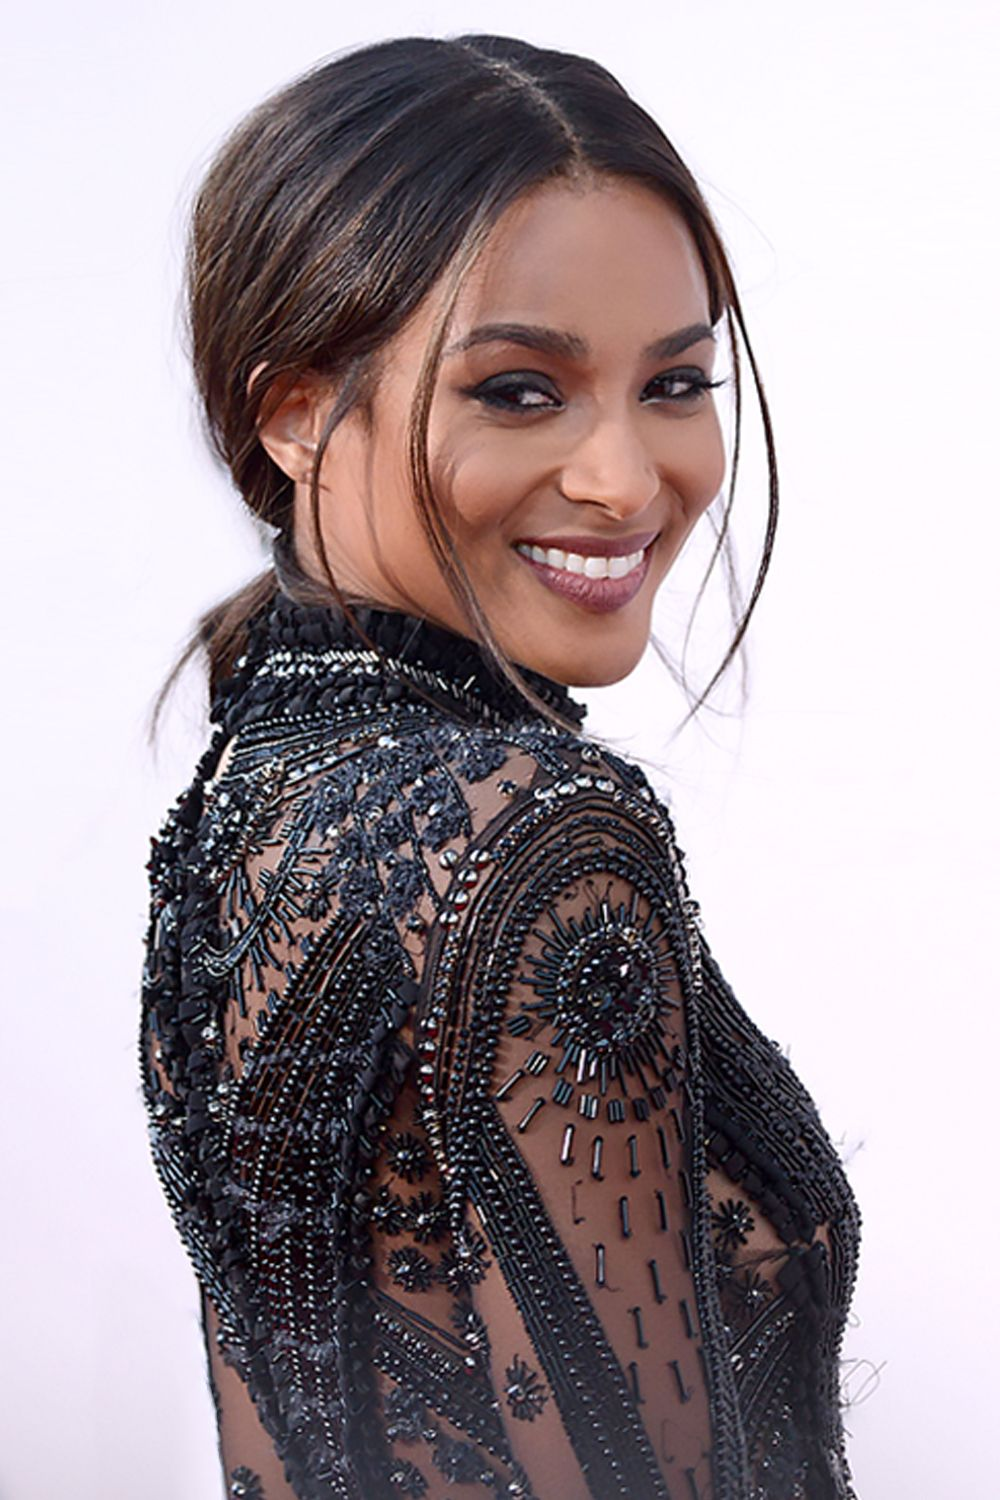 "<p>Ciara's hairstylist, <a href=""http://www.elle.com/beauty/hair/a32591/ciara-schoo..."" target=""_blank"">Cesar Ramirez</a>, created a laser precise <a class=""body-el-link standard-body-el-link"" href=""http://www.elle.com/beauty/hair/news/g27202/celebrity-hair-middle-parts/"" target=""_blank"">center part</a> and gathered hair back into a ponytail: ""The trick is to not pull the hair all the way through the elastic,"" he explains. ""Leaving the hair in a loop creates something between a pony and a knot."" </p>"